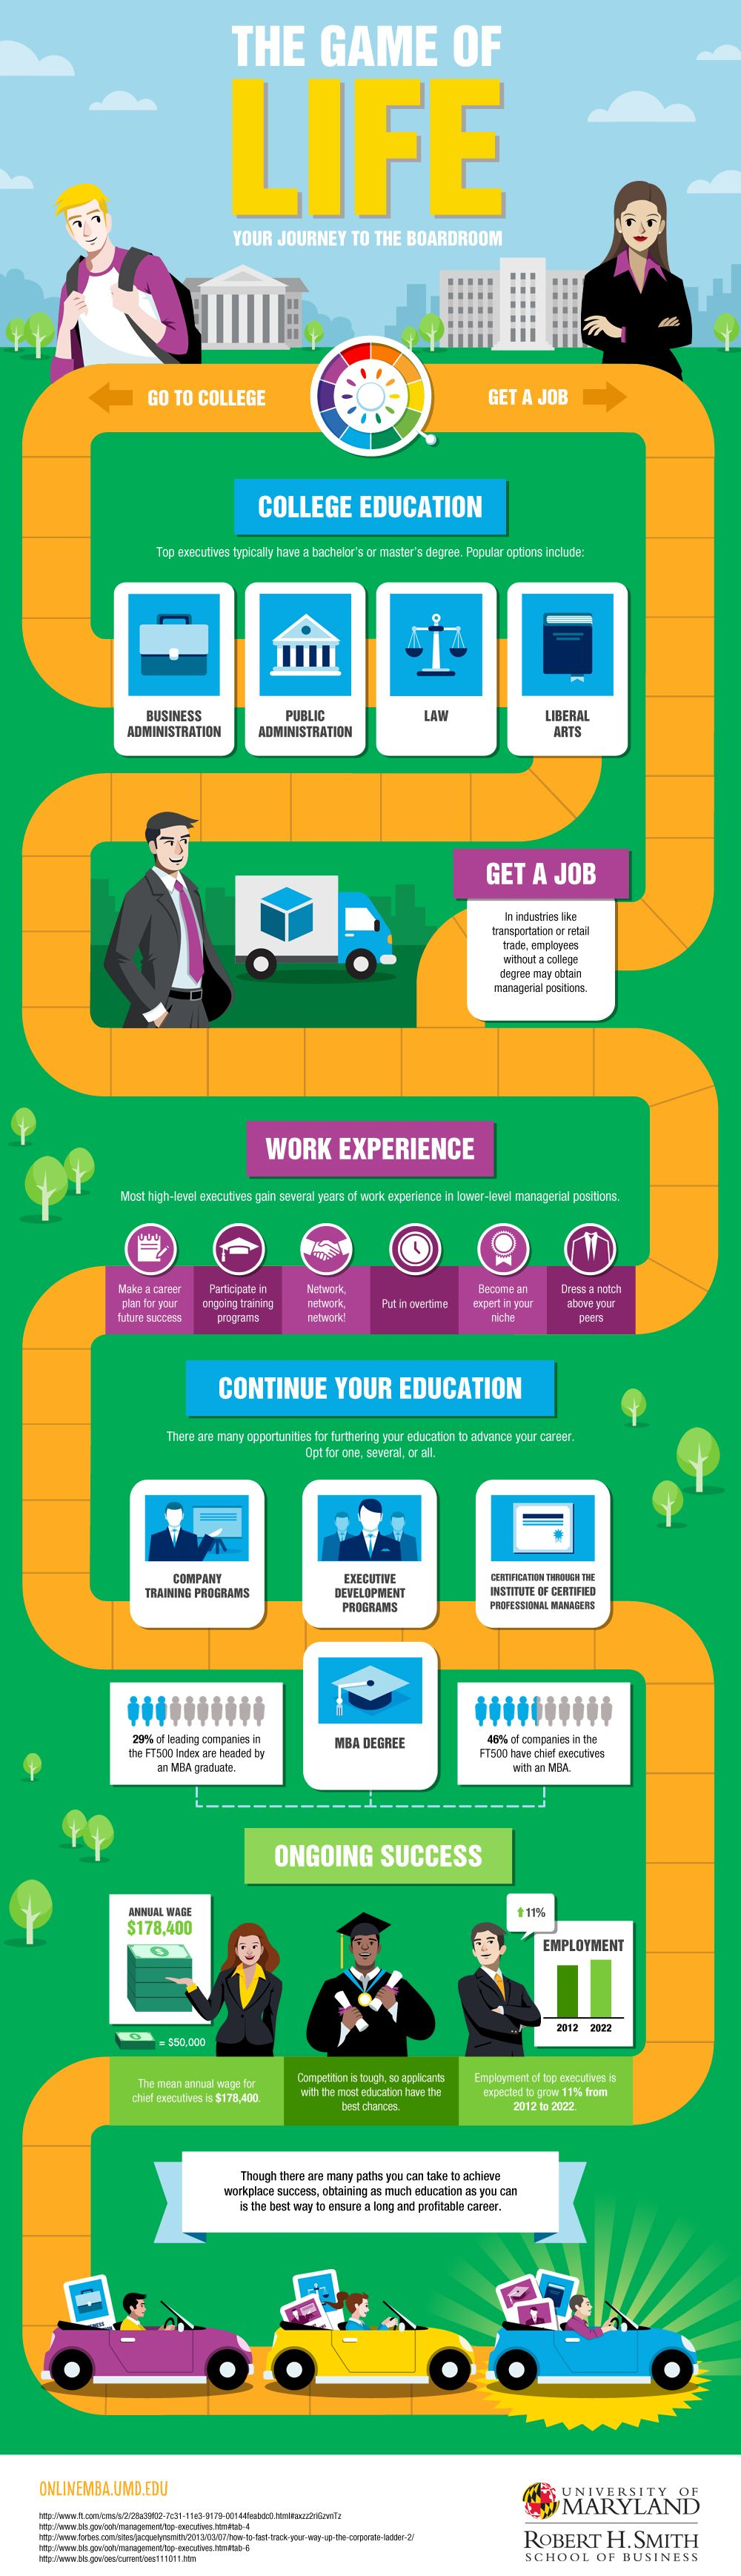 The Game of Life: Your Journey to the Boardroom #infographic